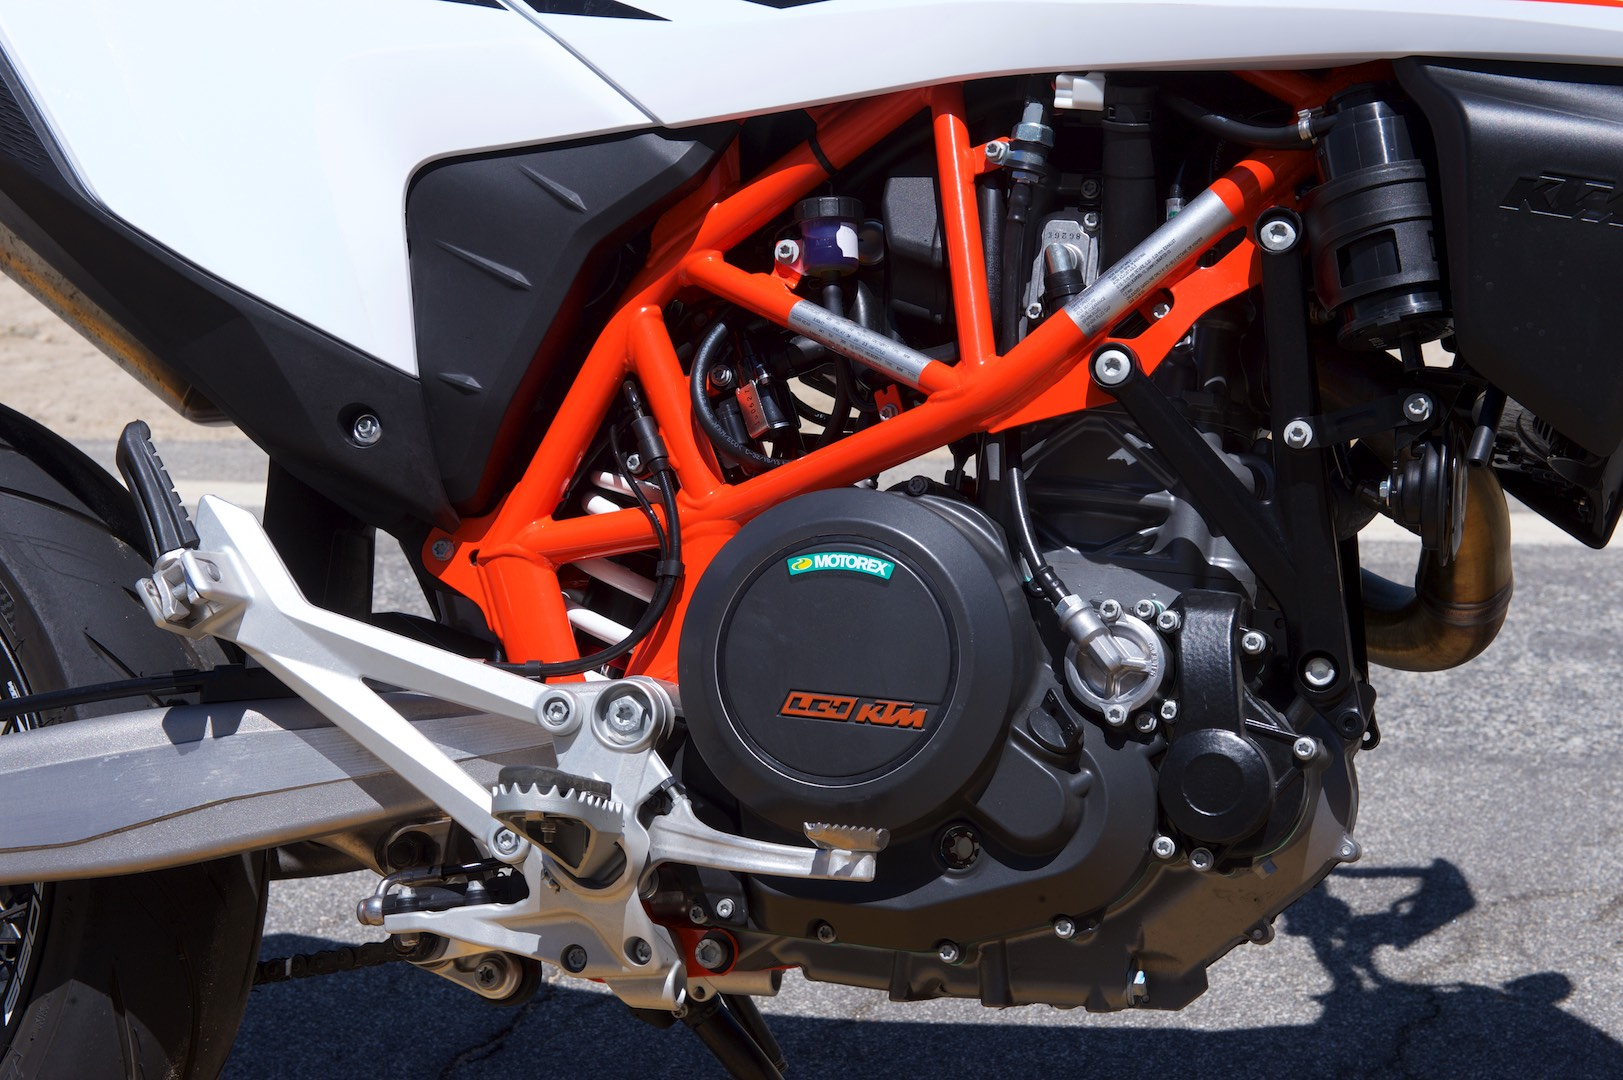 2019 KTM 690 SMC R Review (17 Fast Facts)